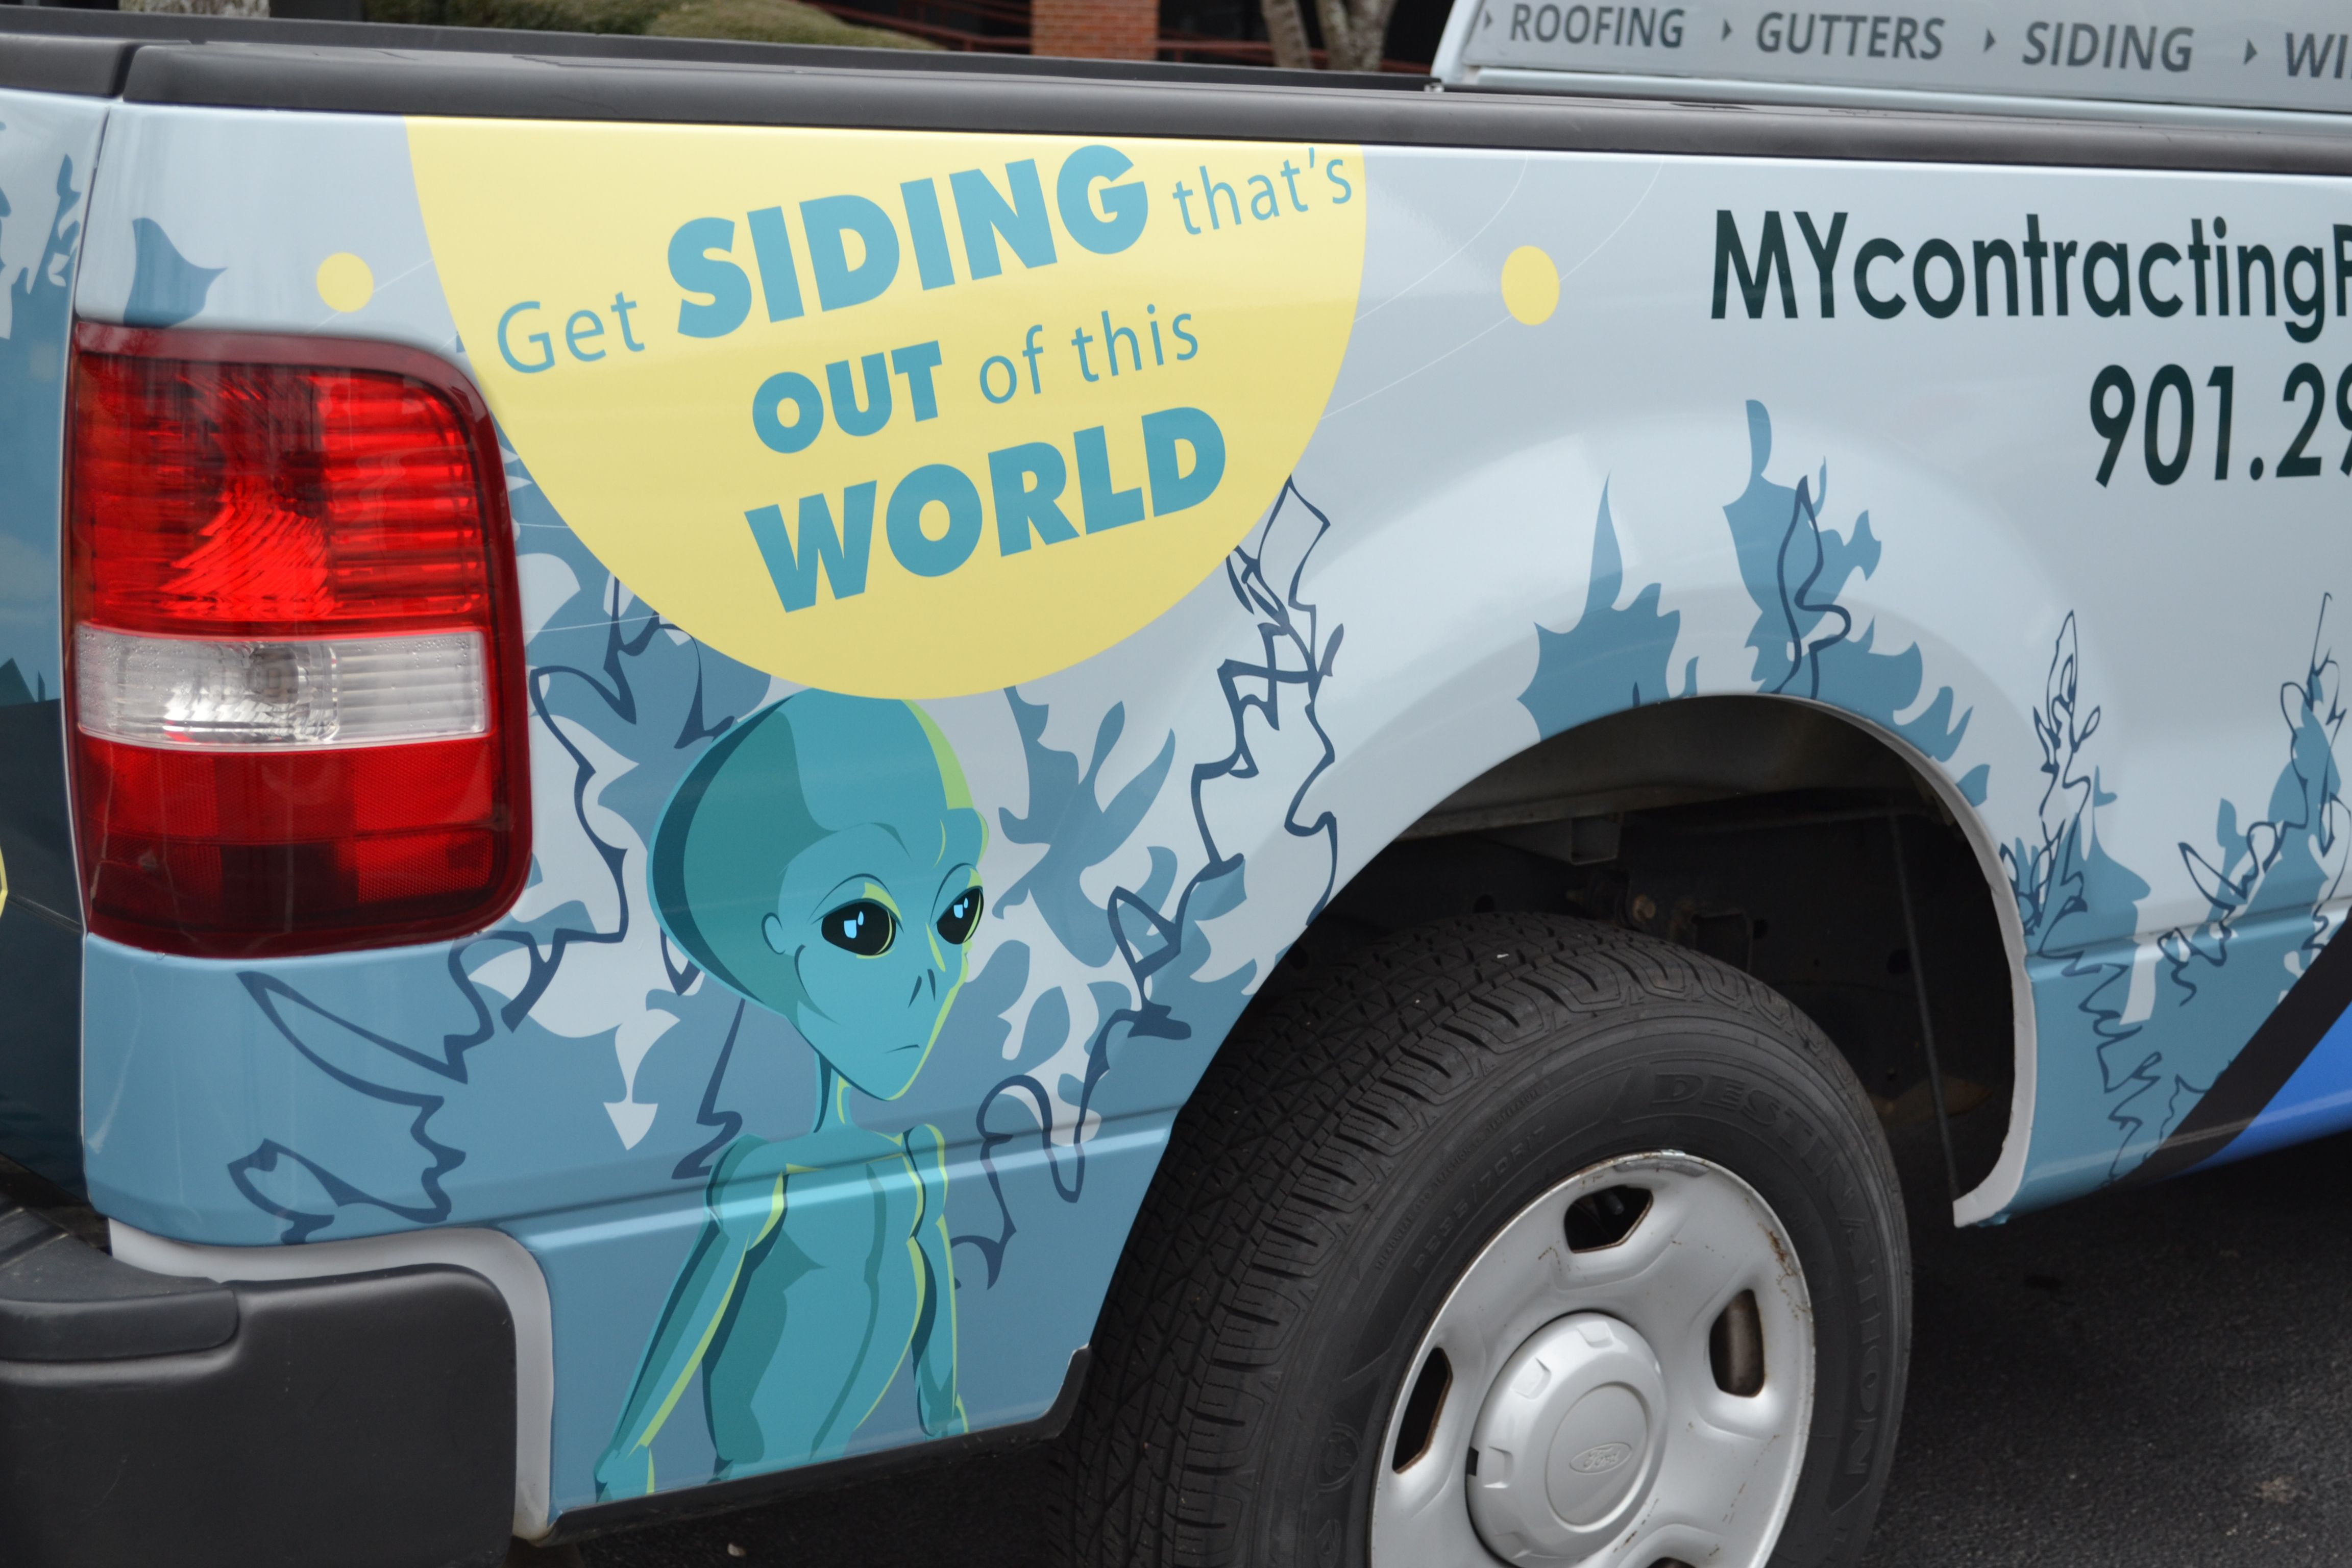 Vehicle Wrap done by Speedpro Imaging Memphis for contractingPro ...